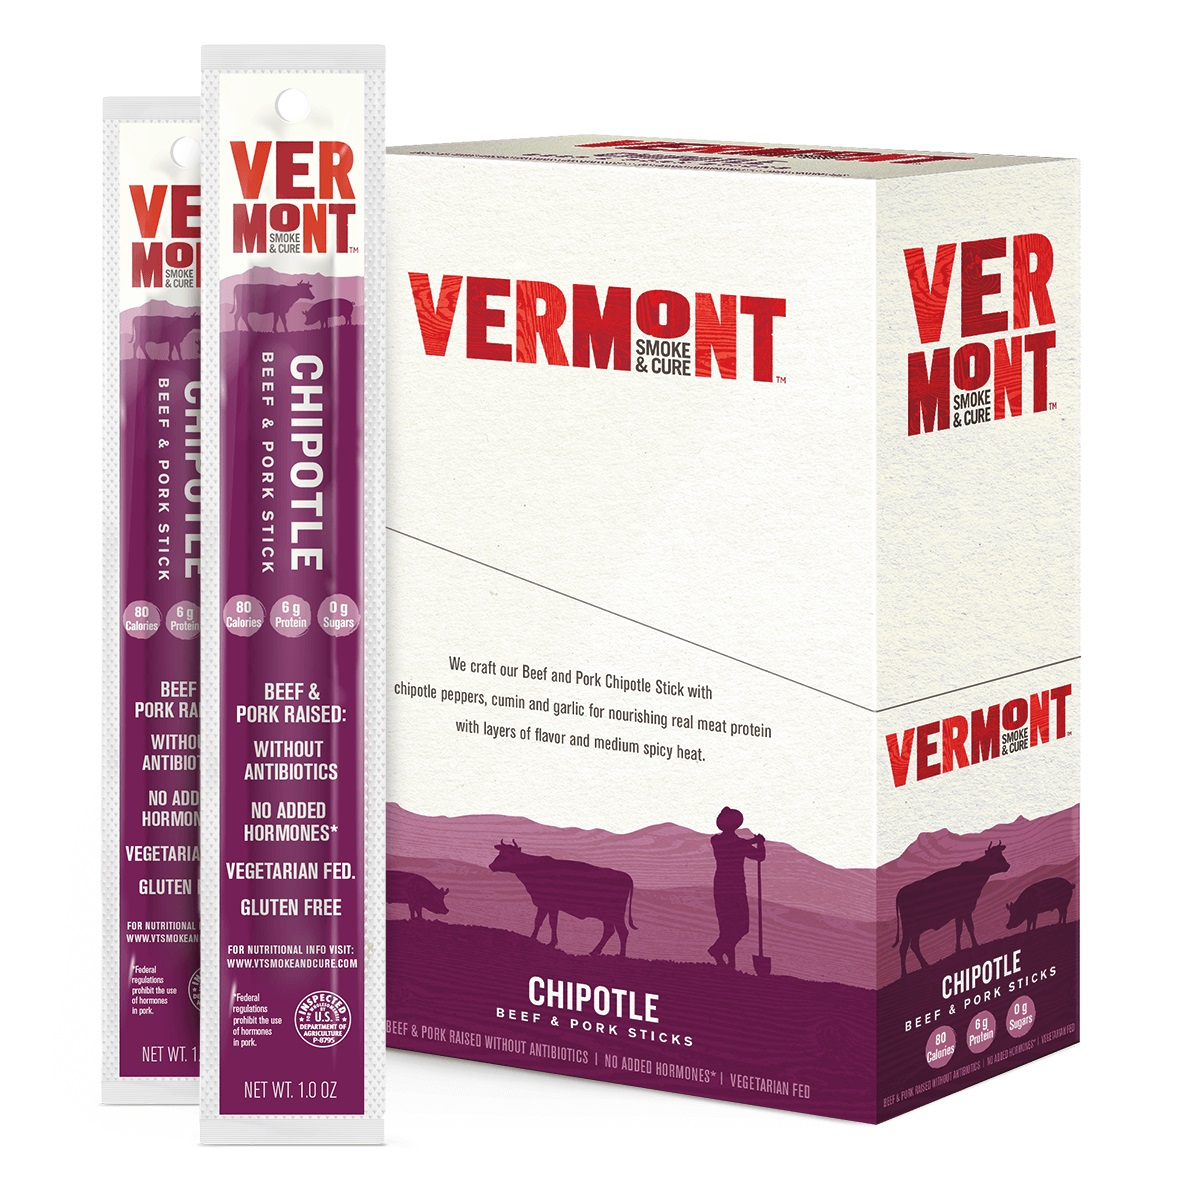 Vermont Smoke & Cure Meat Sticks, Beef & Pork, Antibiotic Free, Gluten Free, Chipotle, 1oz Stick, 24 Count